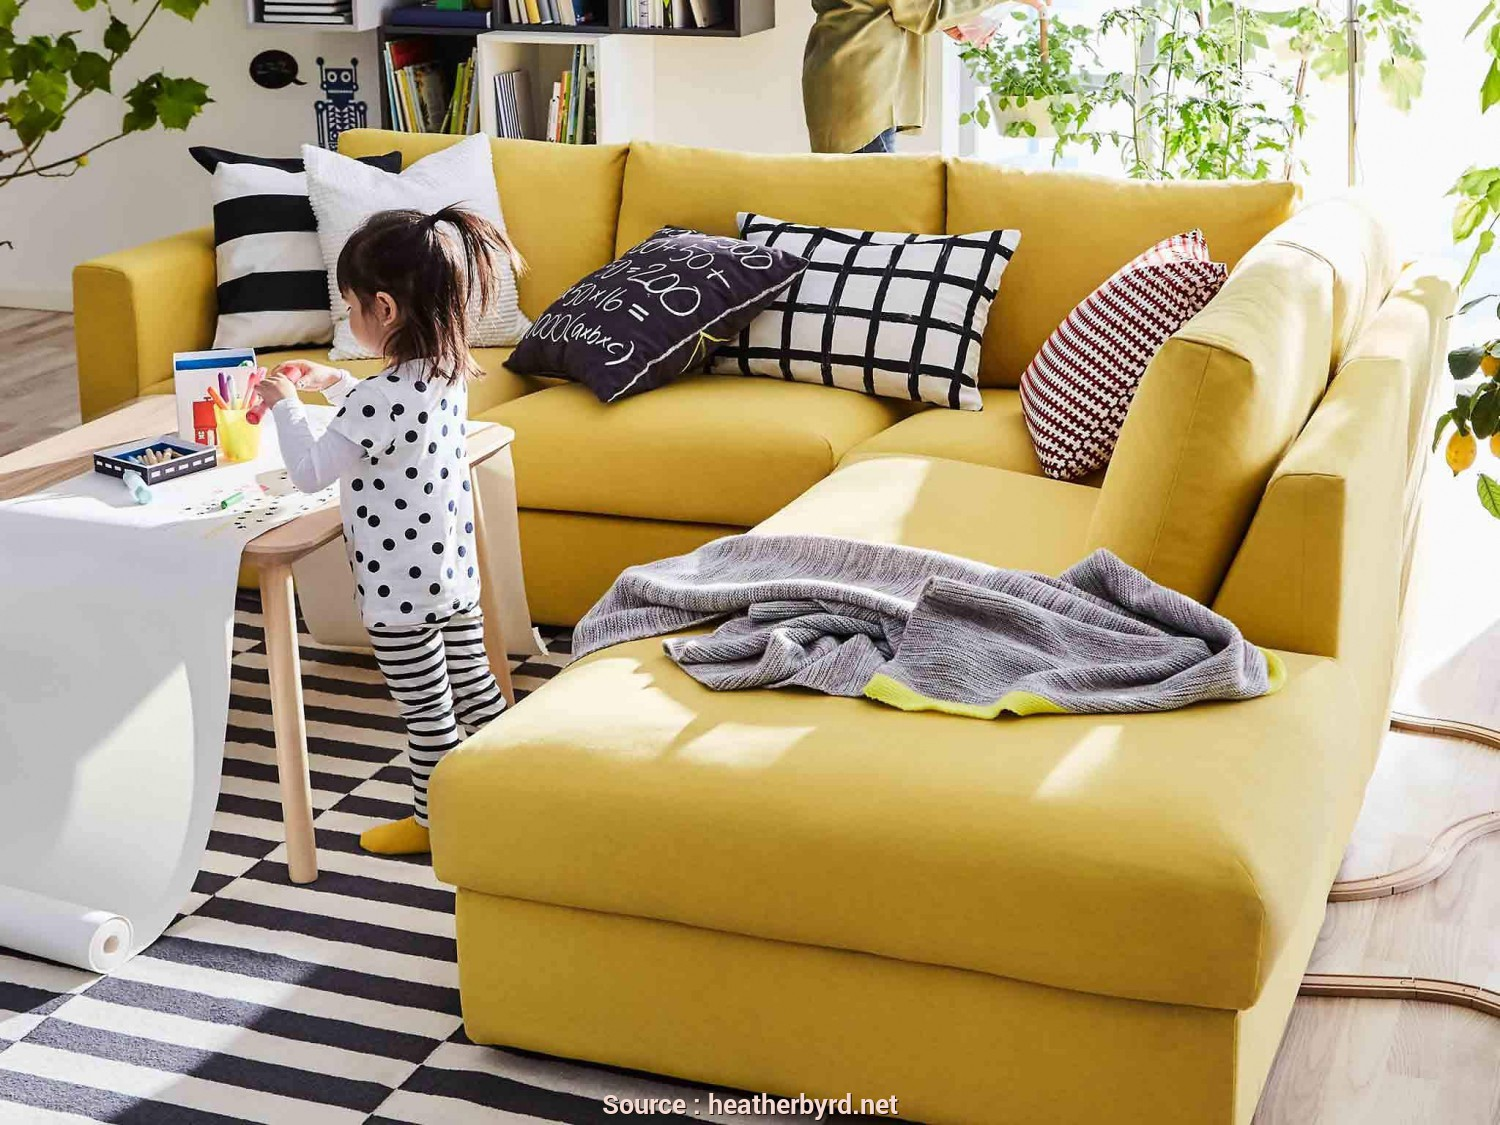 Ikea Divano Vimle, Maestoso Perfect Spend Quality Time Together With Your Children In Ikea Vimle Corner Sofa With, Vimle Ikea